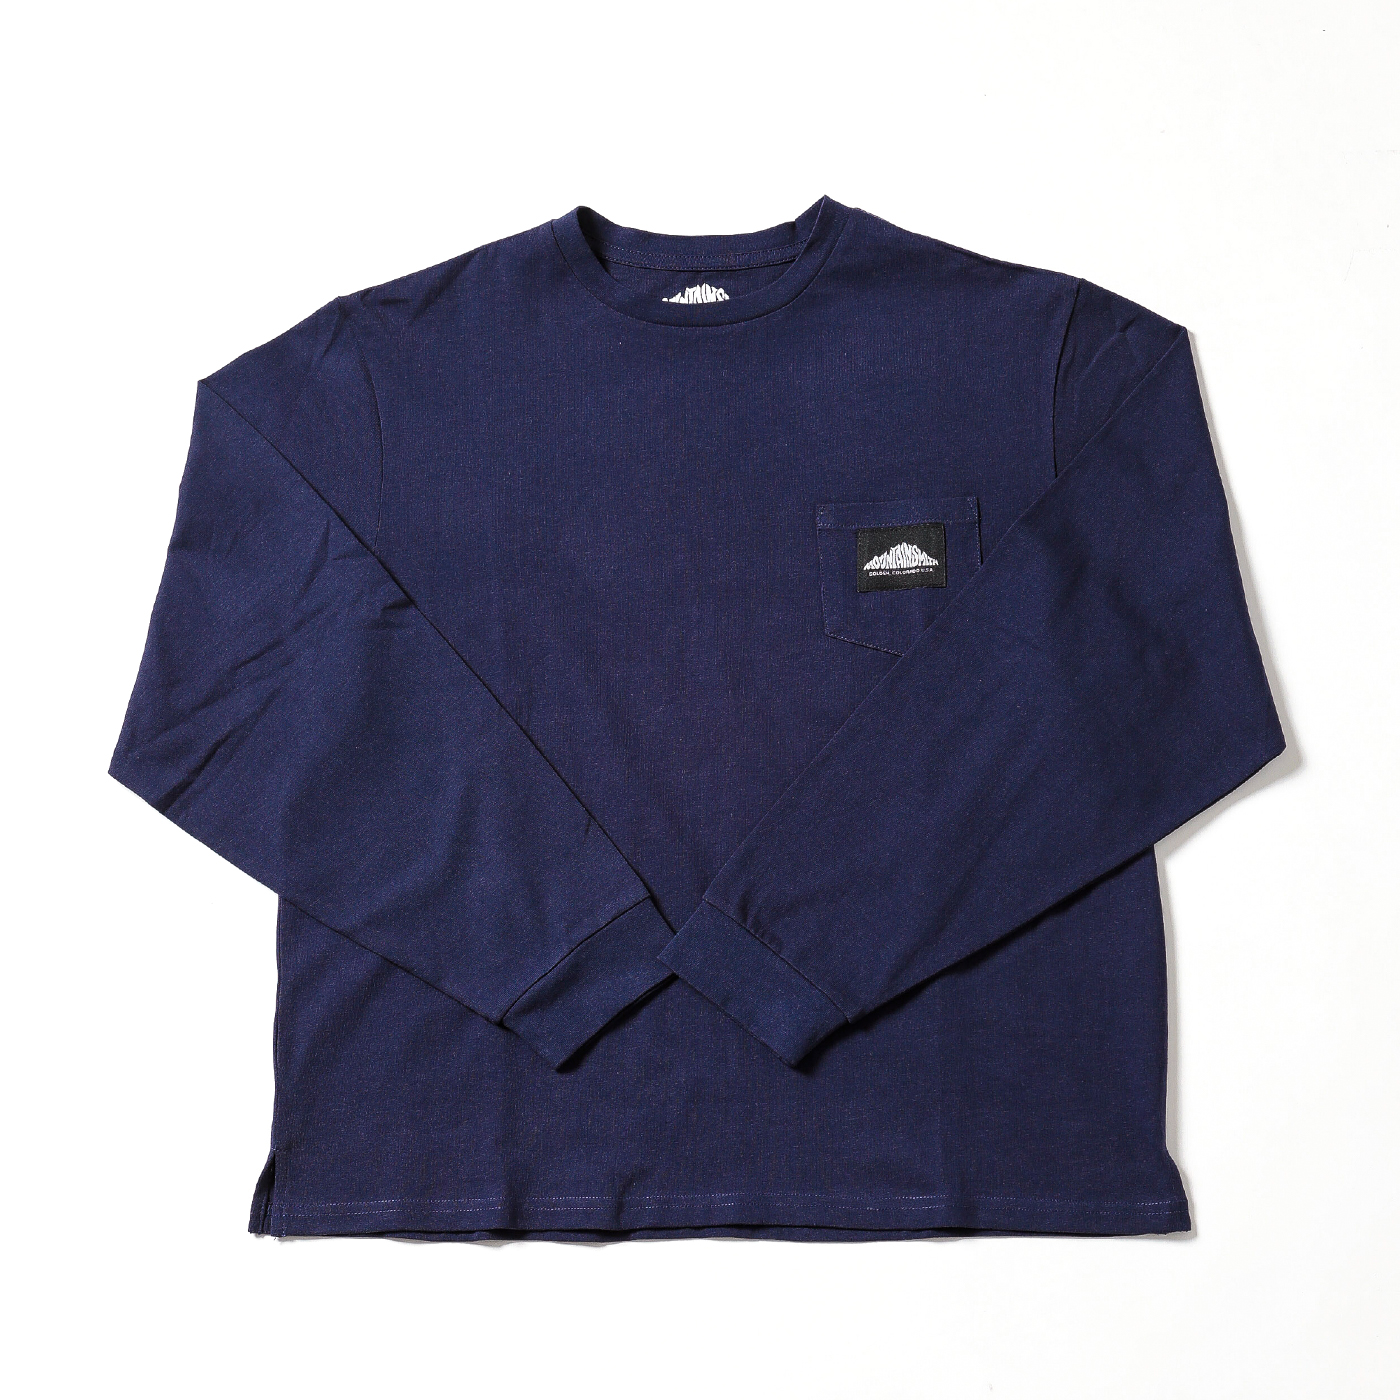 product: MS EMBRO LS / color: NAVY 1